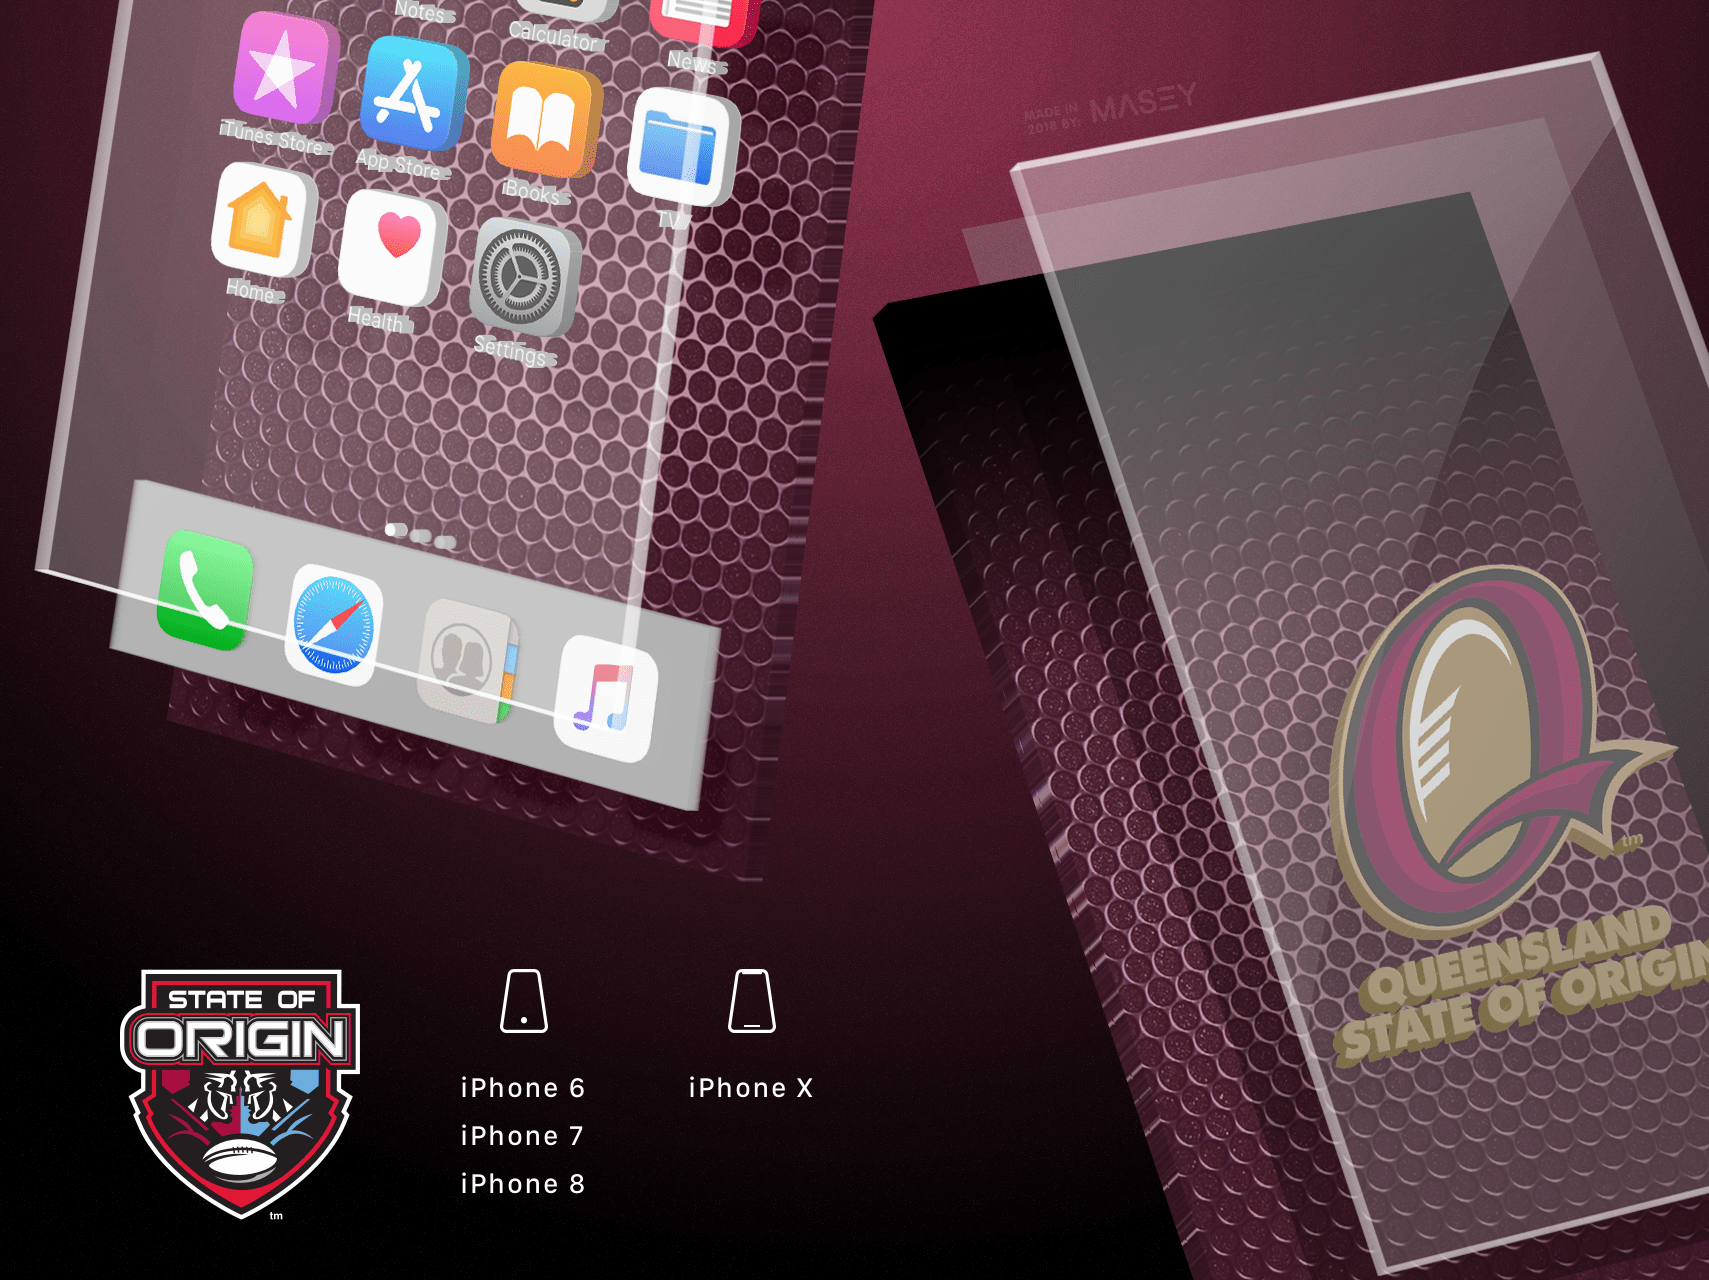 QLD Maroons Metal iPhone Wallpaper